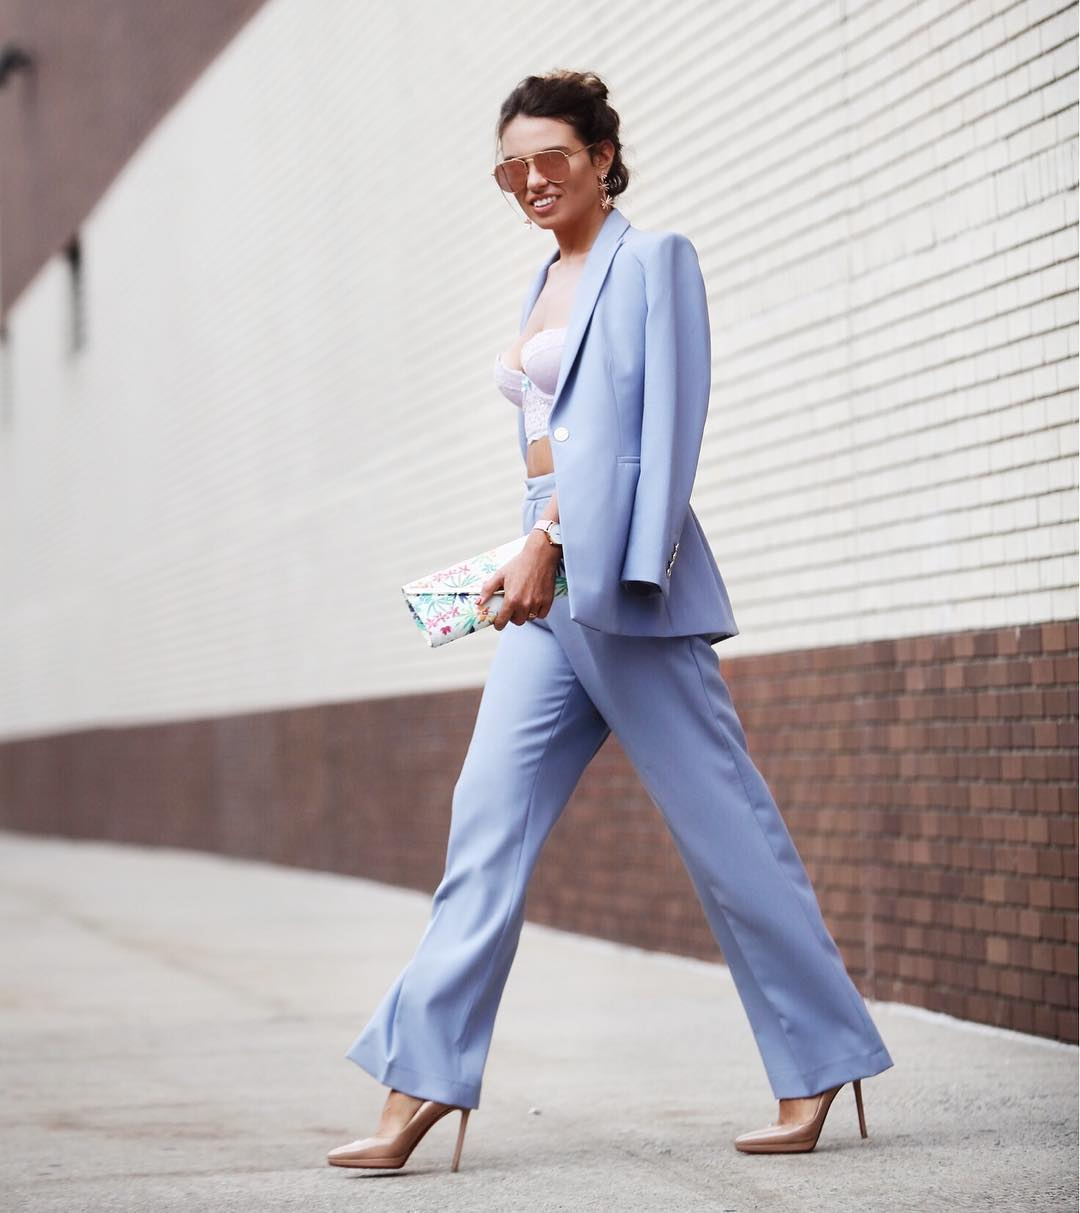 Pastel perfection on Nathalie from  @nata_allbuenothings  during NYFW.